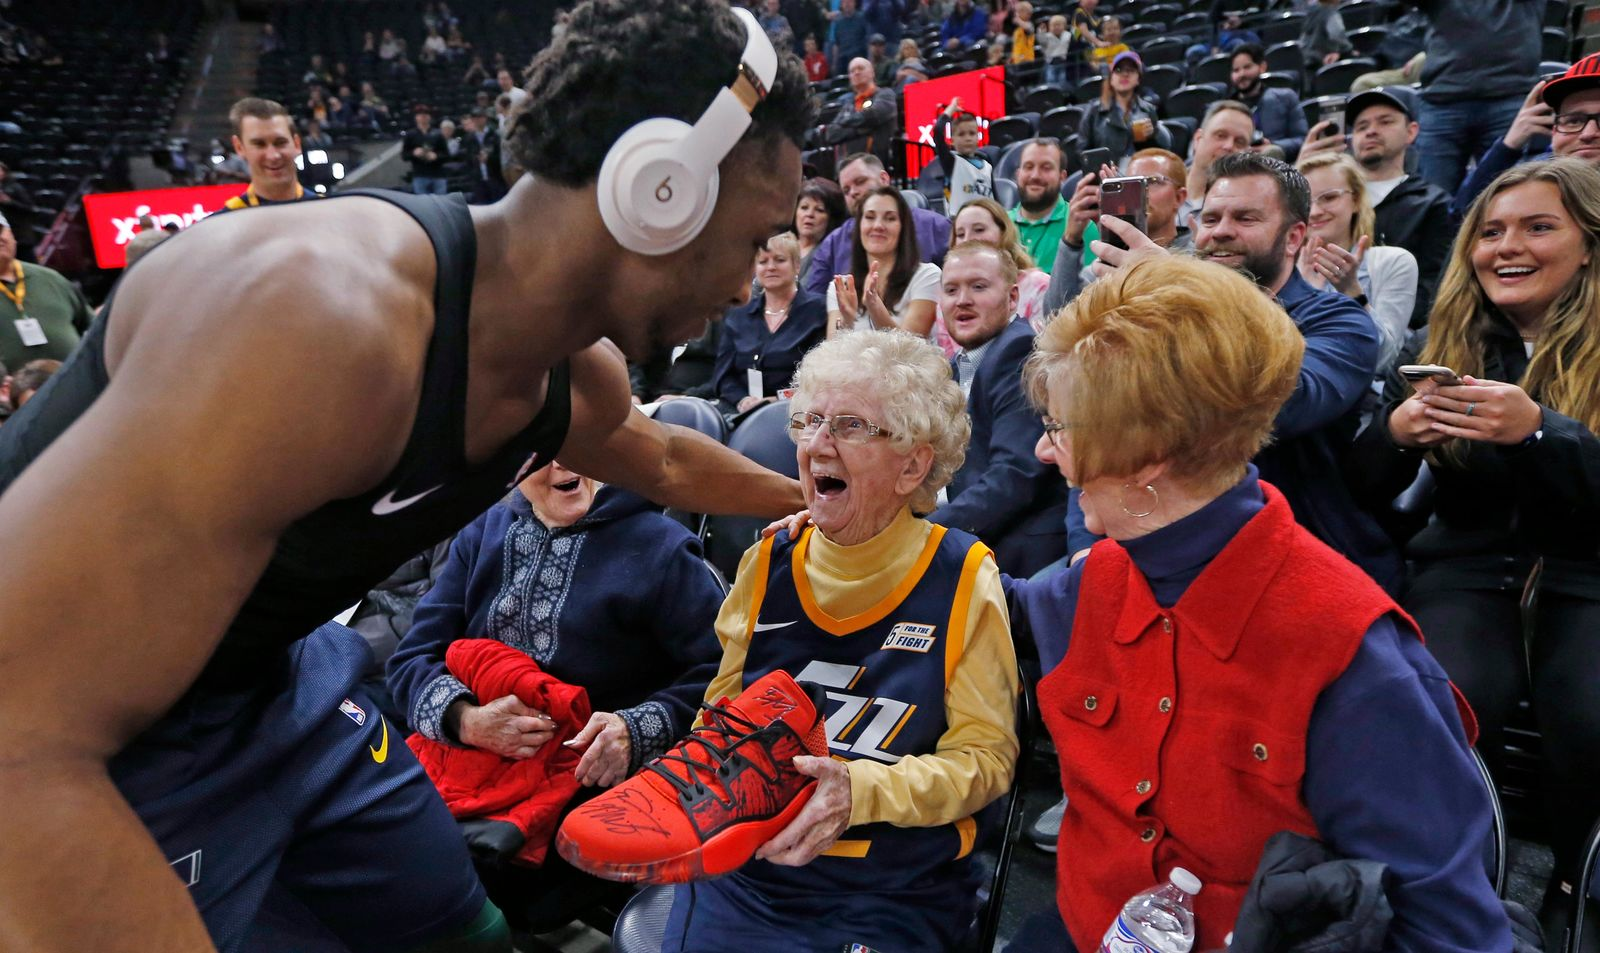 Utah Jazz guard Donovan Mitchell, left, hands his basketball shoe to Roberta Morgan, 102, after he warmed up for the team's NBA basketball game against the Milwaukee Bucks on Saturday, March 2, 2019, in Salt Lake City. (AP Photo/Rick Bowmer)